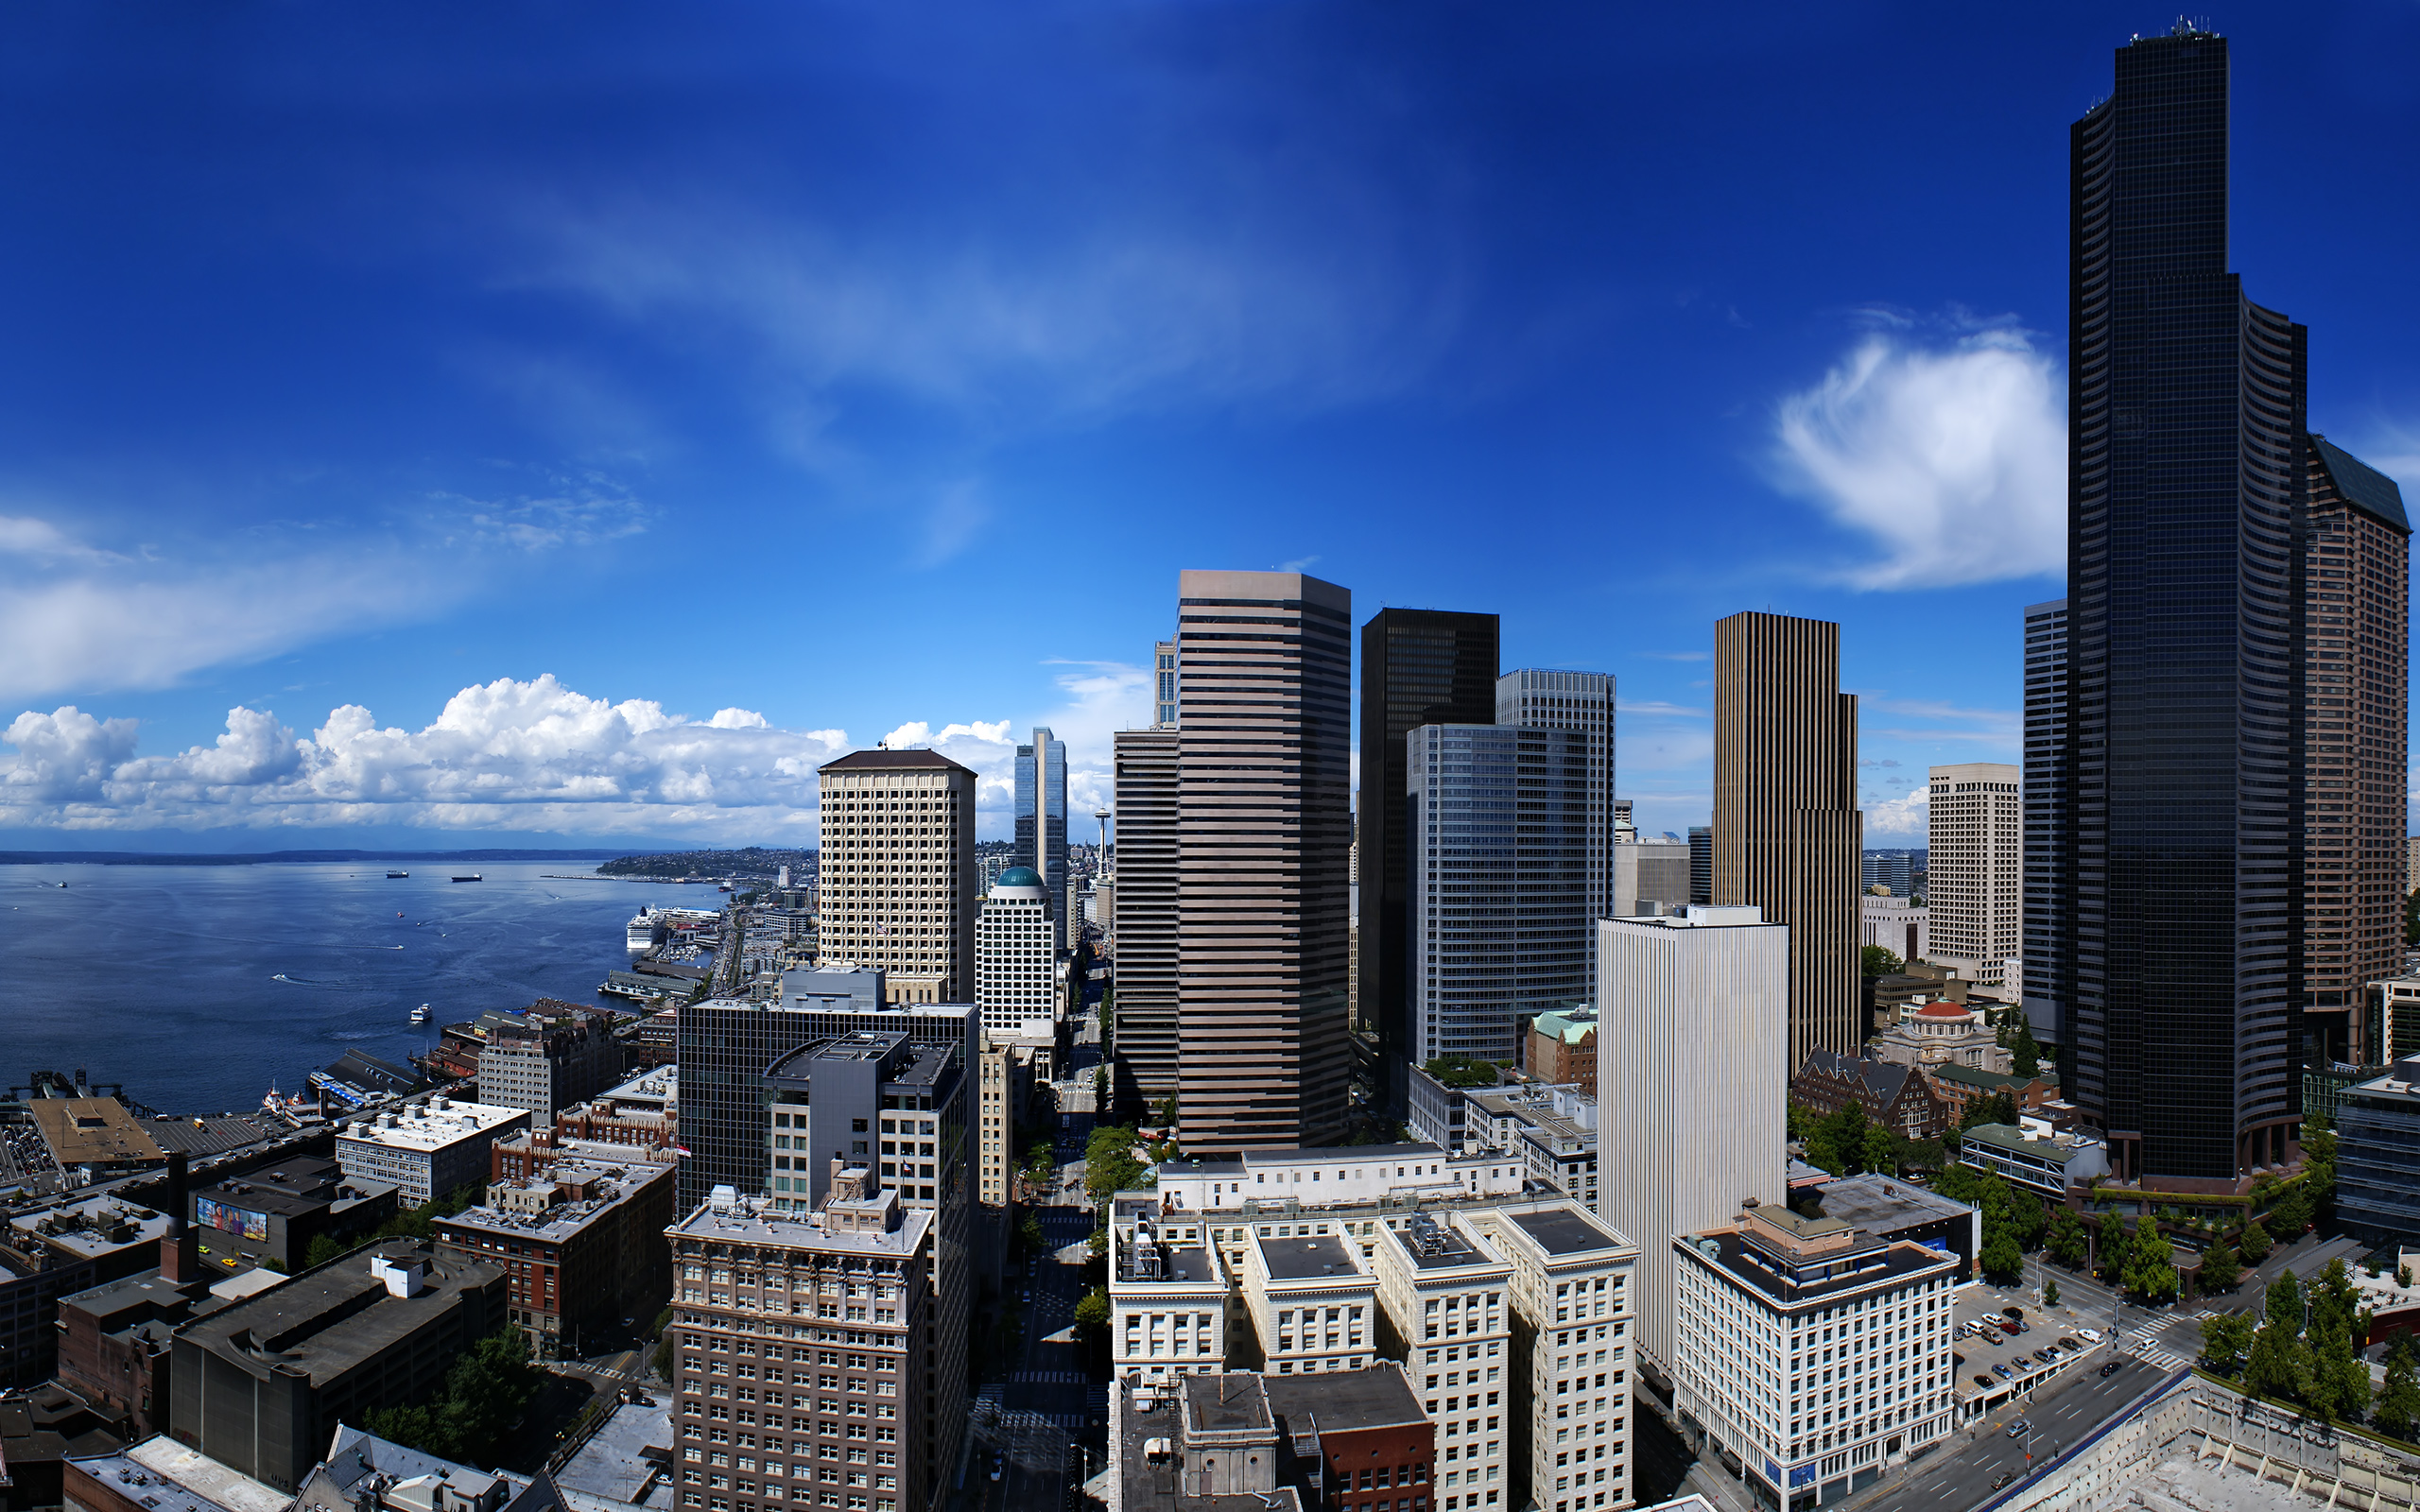 seattle town wallpapers 6904 2560x1600 Wallpapers 2560x1600